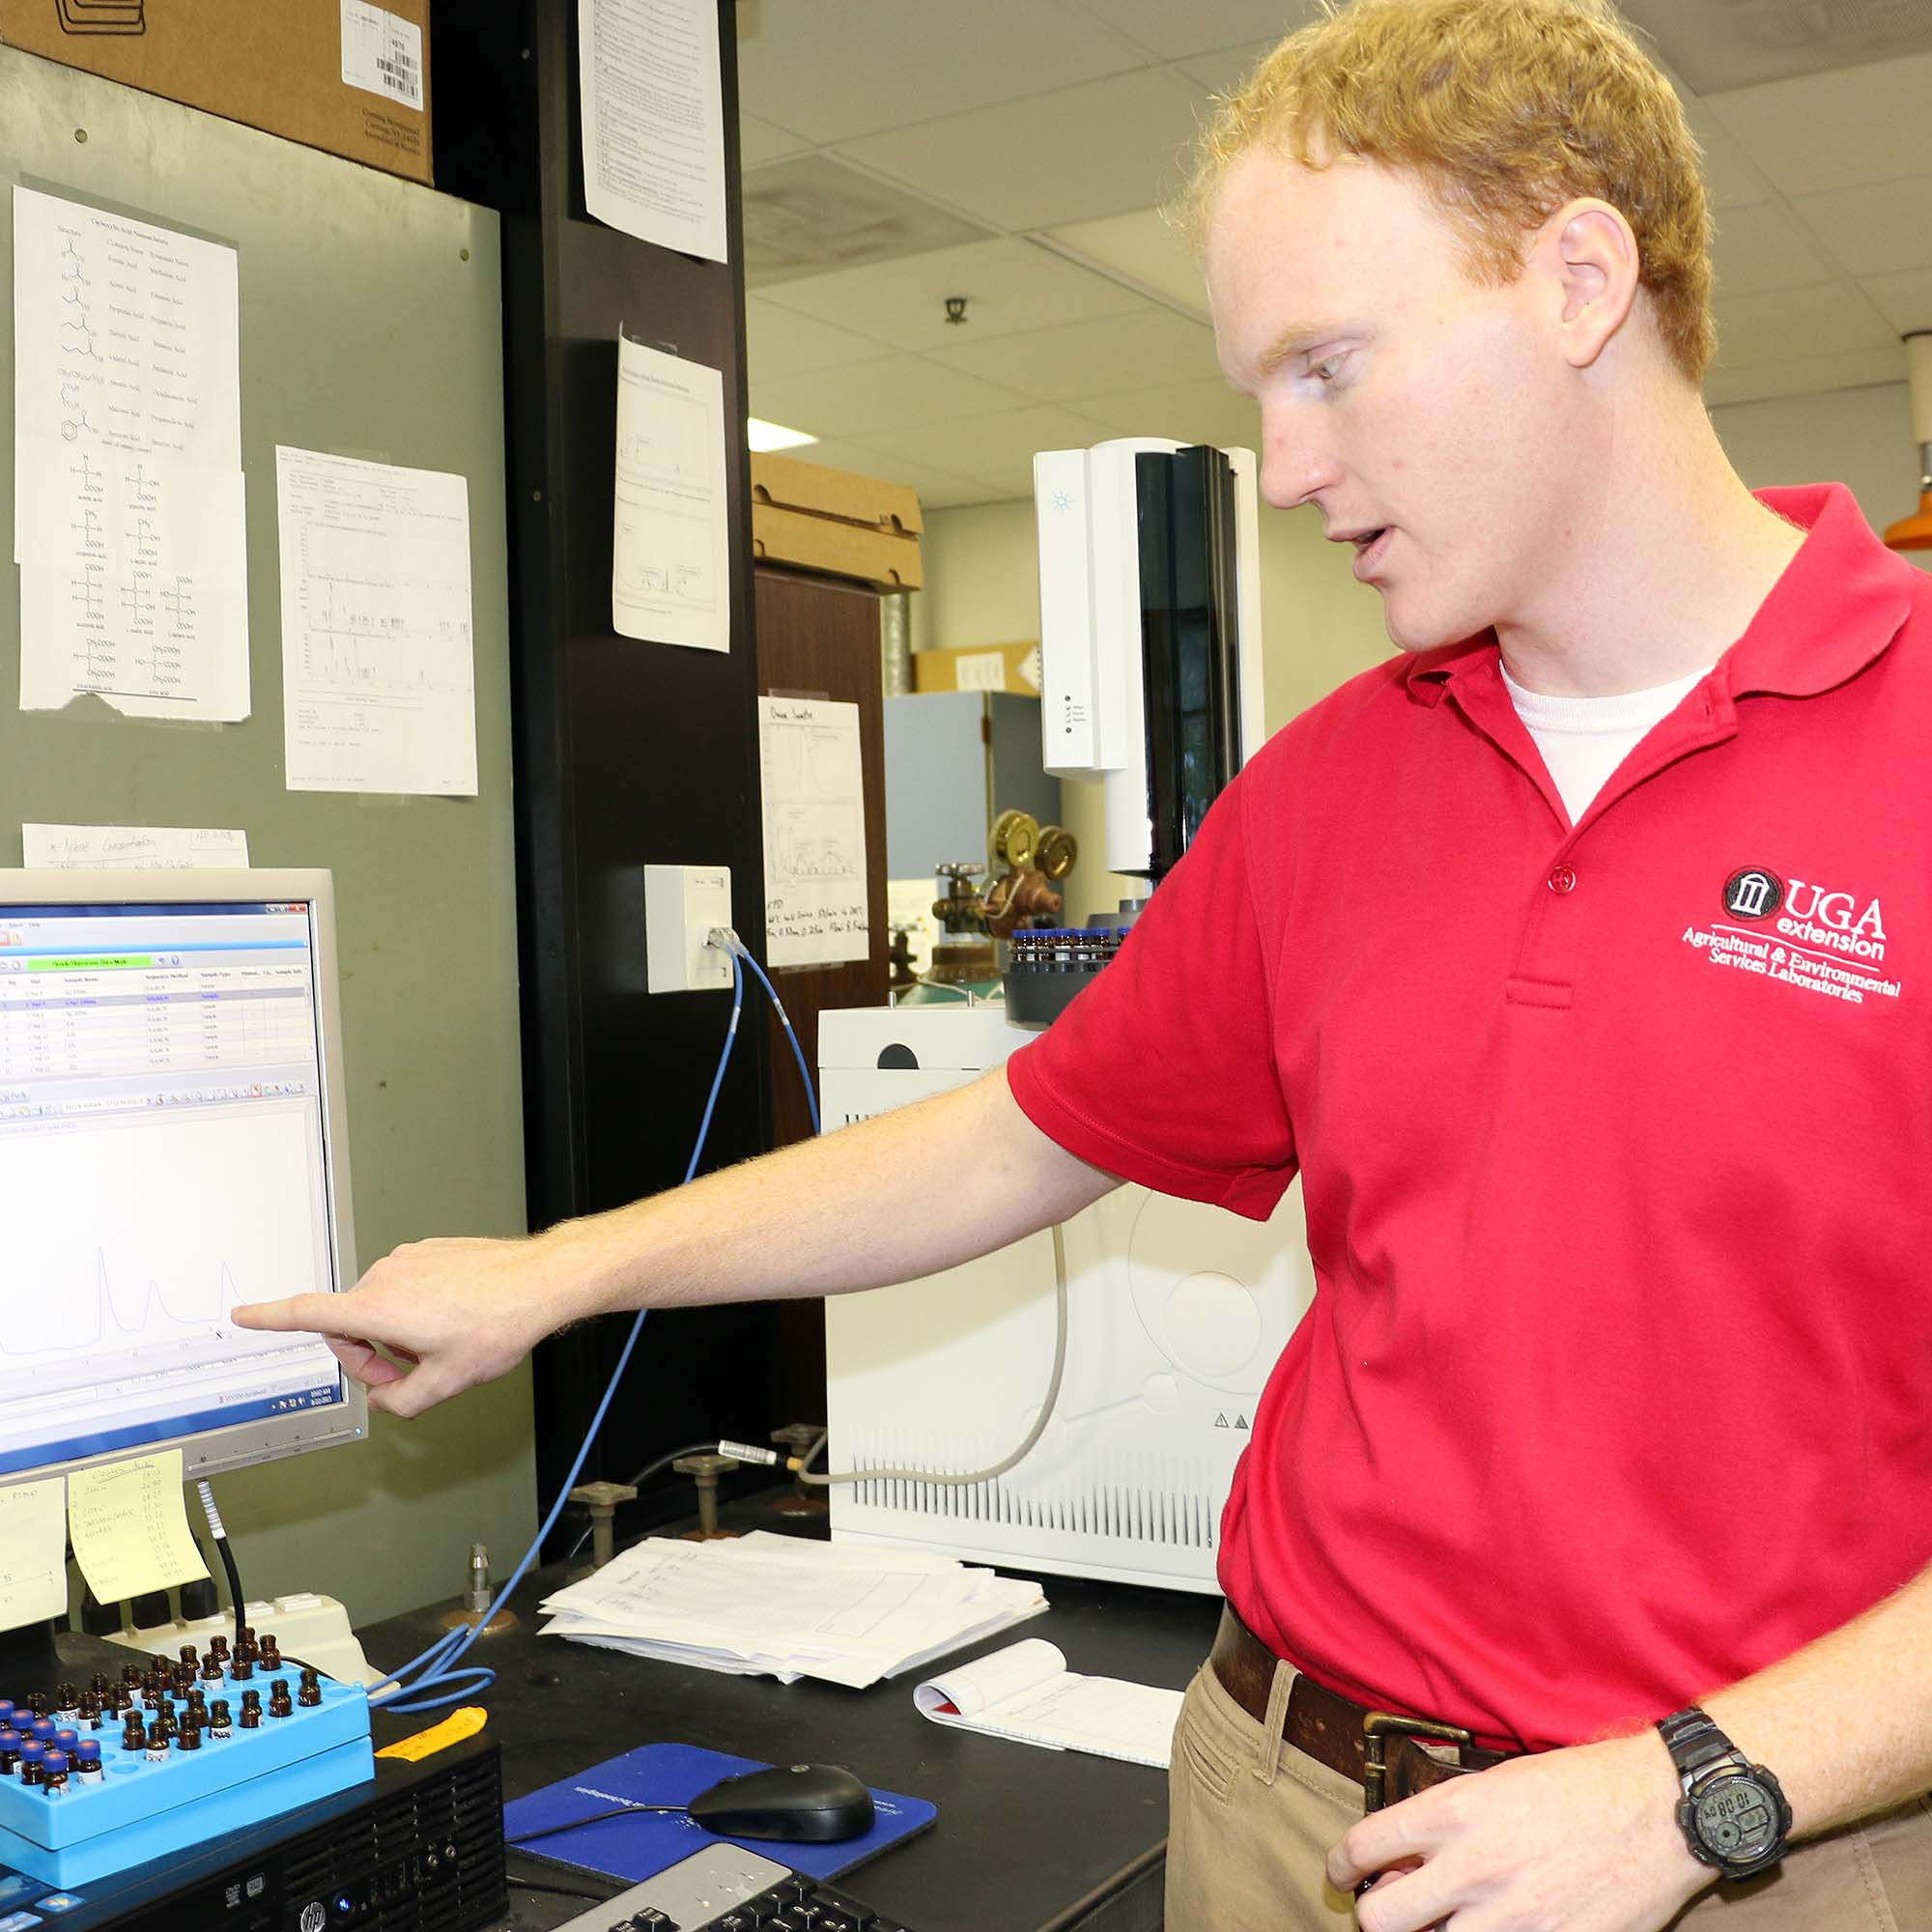 Crop and Environmental Quality Lab Manager Daniel Jackson analyzes wine grape test results at the UGA Cooperative Extension Agricultural and Environmental Services Laboratories.